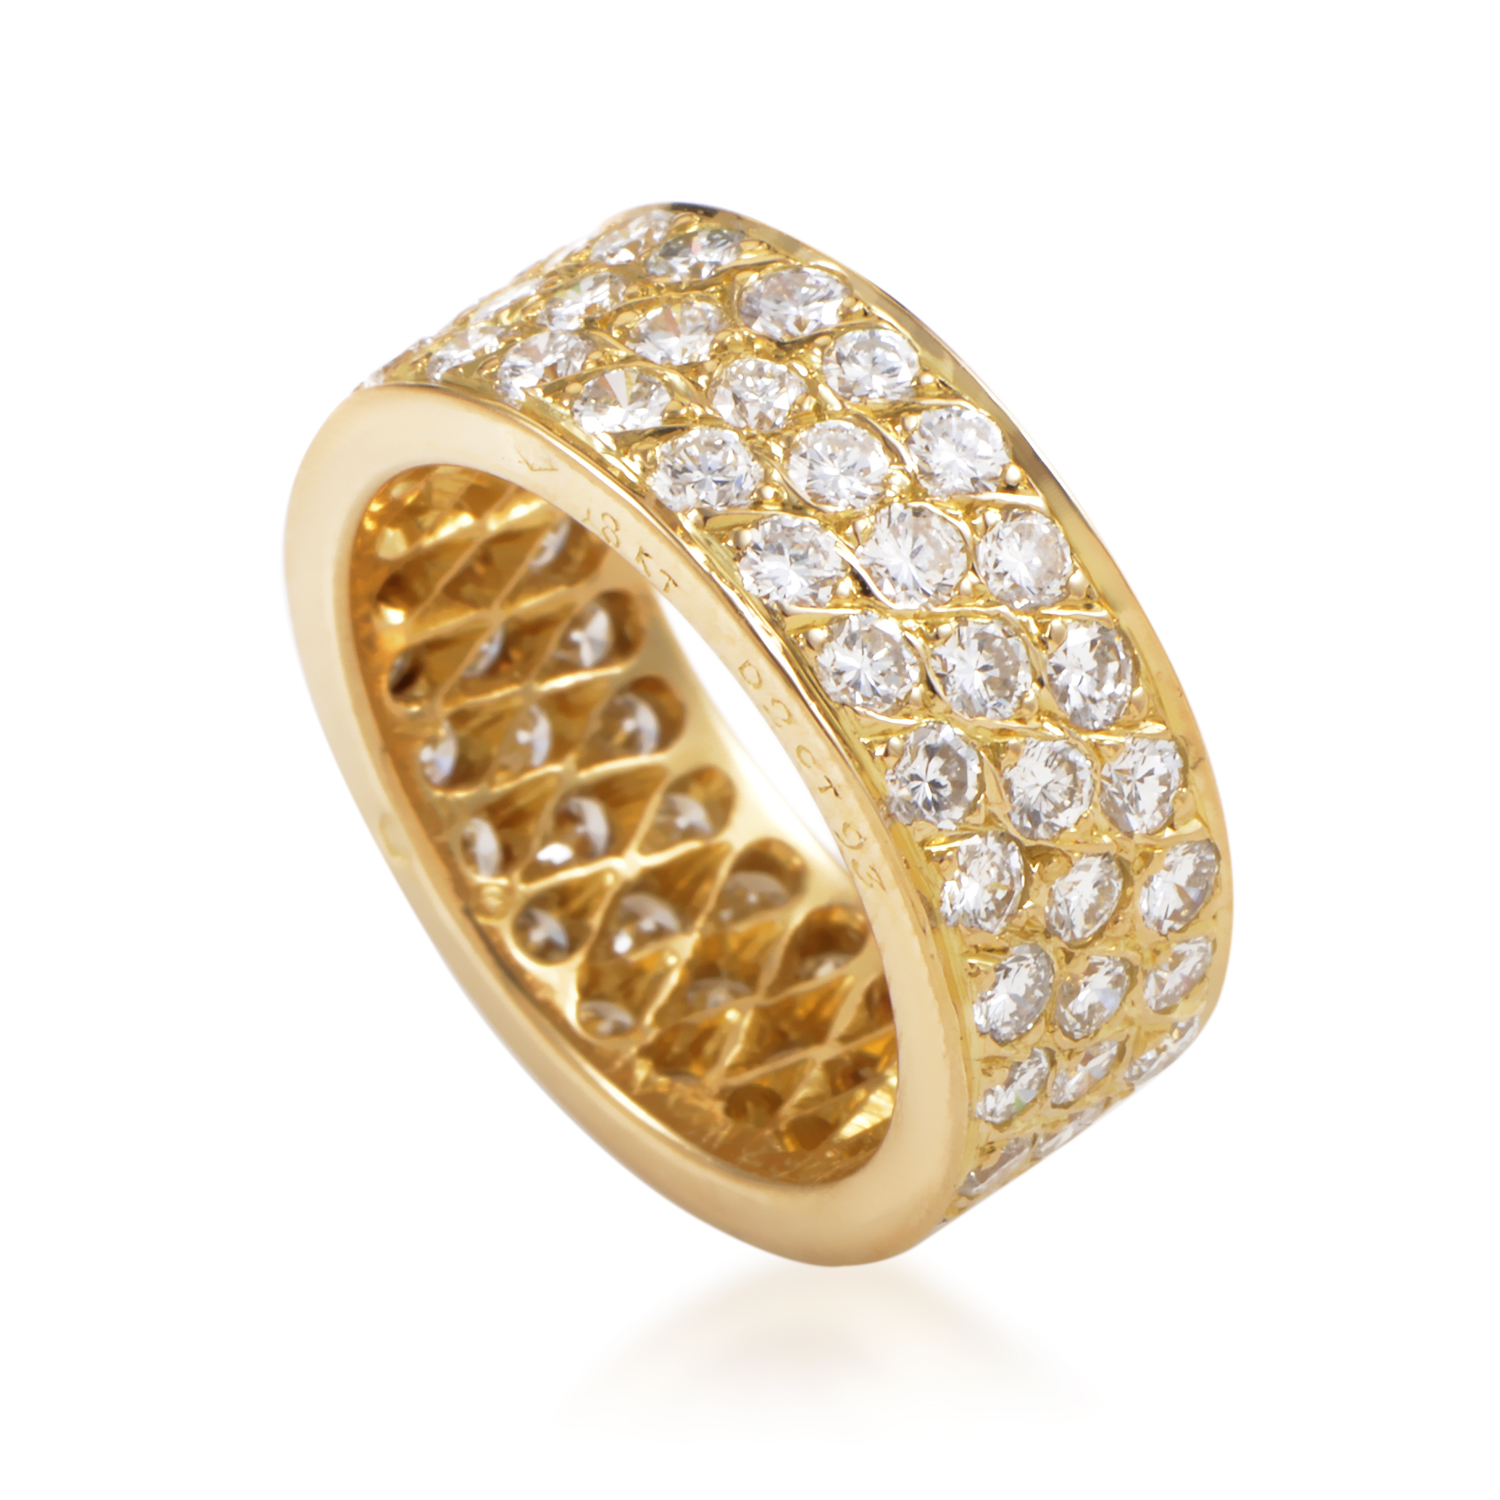 Van Cleef & Arpels Women's 18K Yellow Gold Diamond Pave Eternity Band Ring